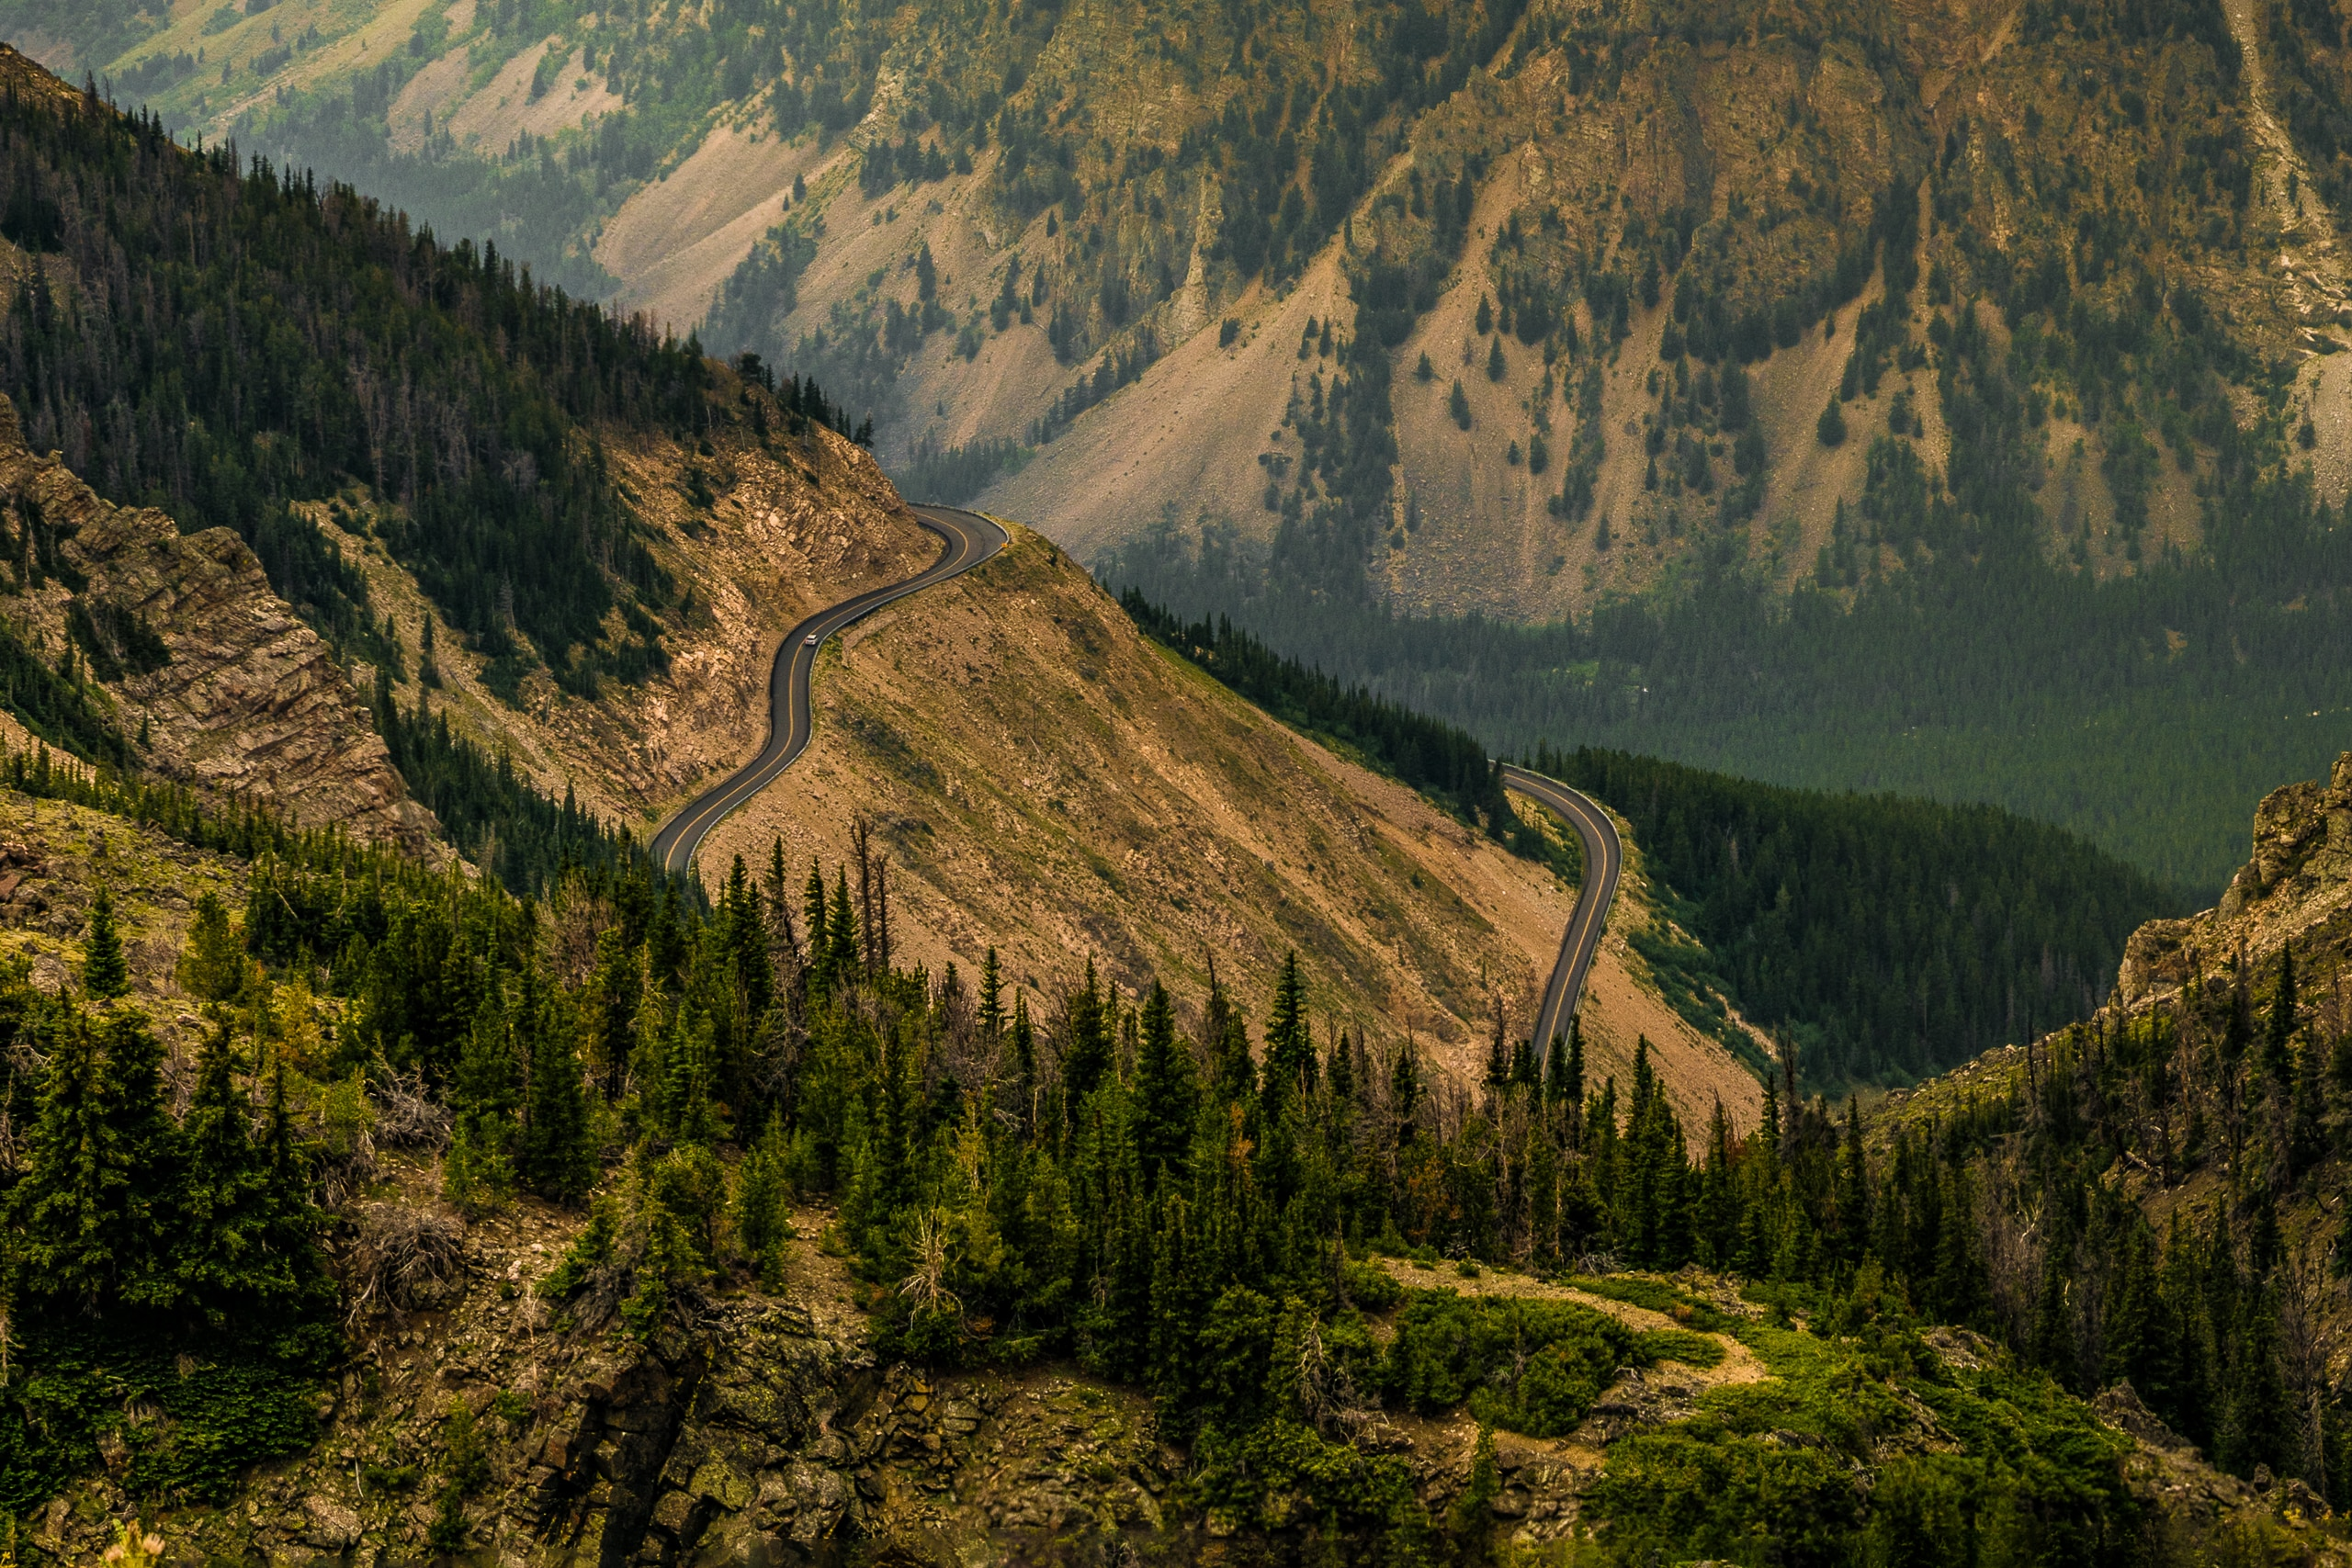 The Beartooth Highway in Wyoming/Montana